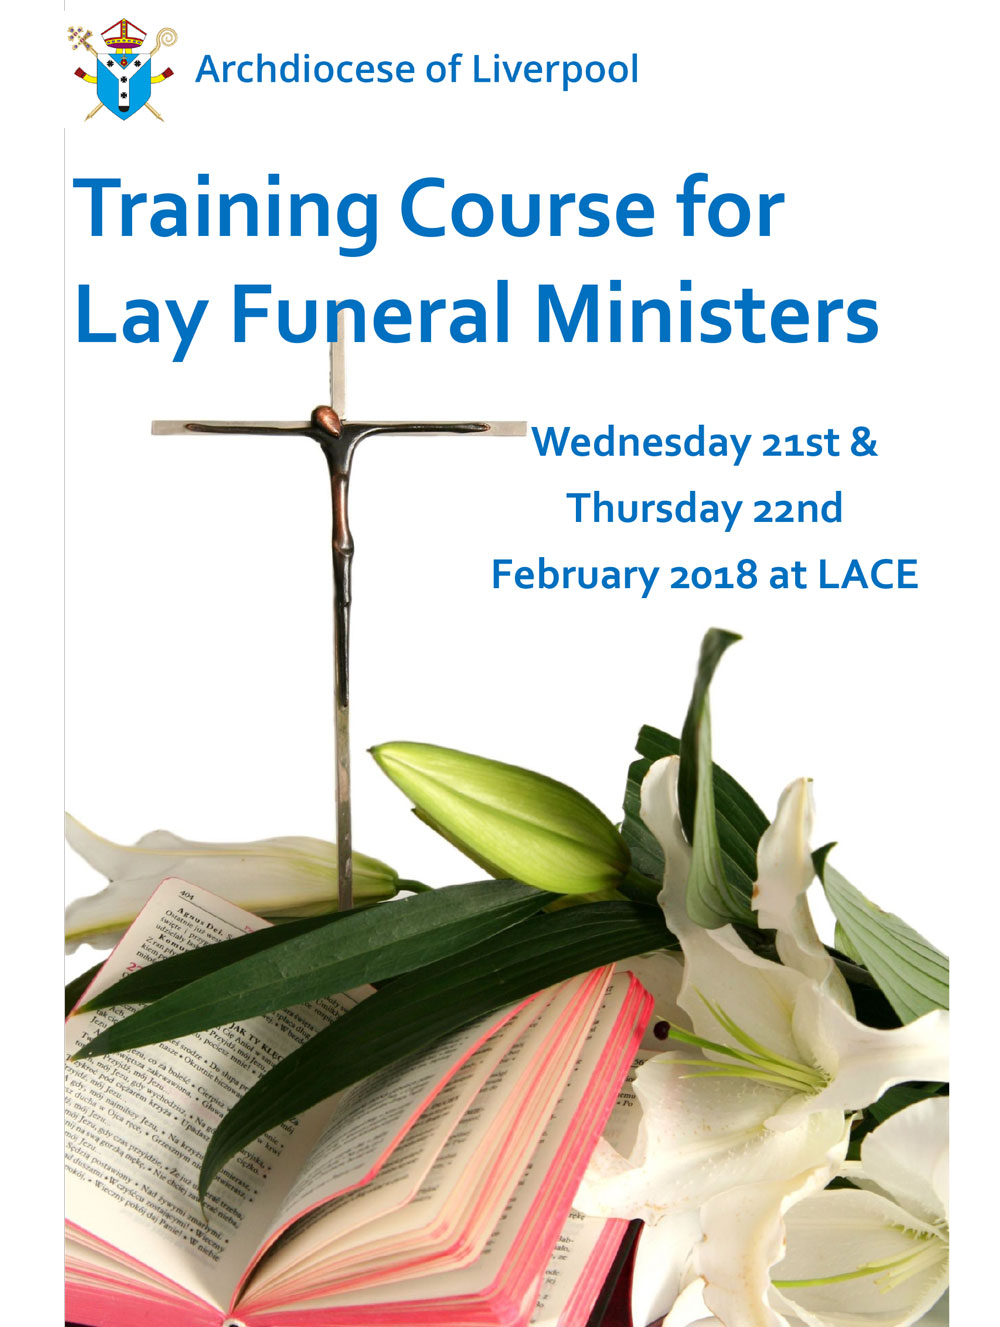 Lay Funeral Ministers Training Course Leaflet February 2018